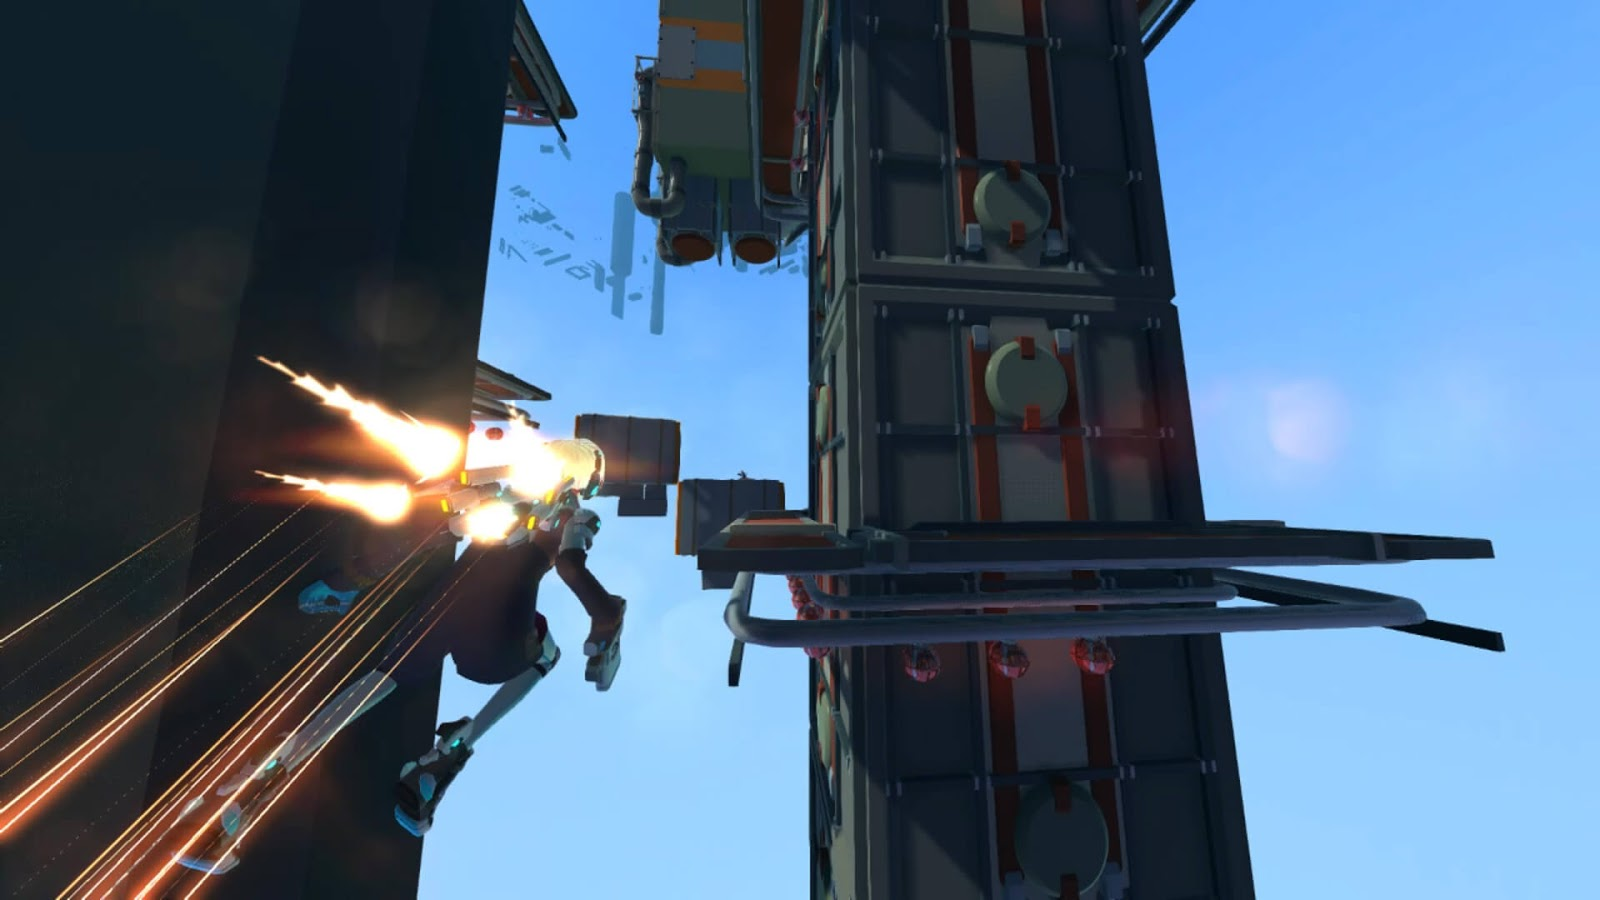 Sky Tracers Is A Sci-Fi Multiplayer Parkour Focused Game From The Creators Of Cloudbuilt